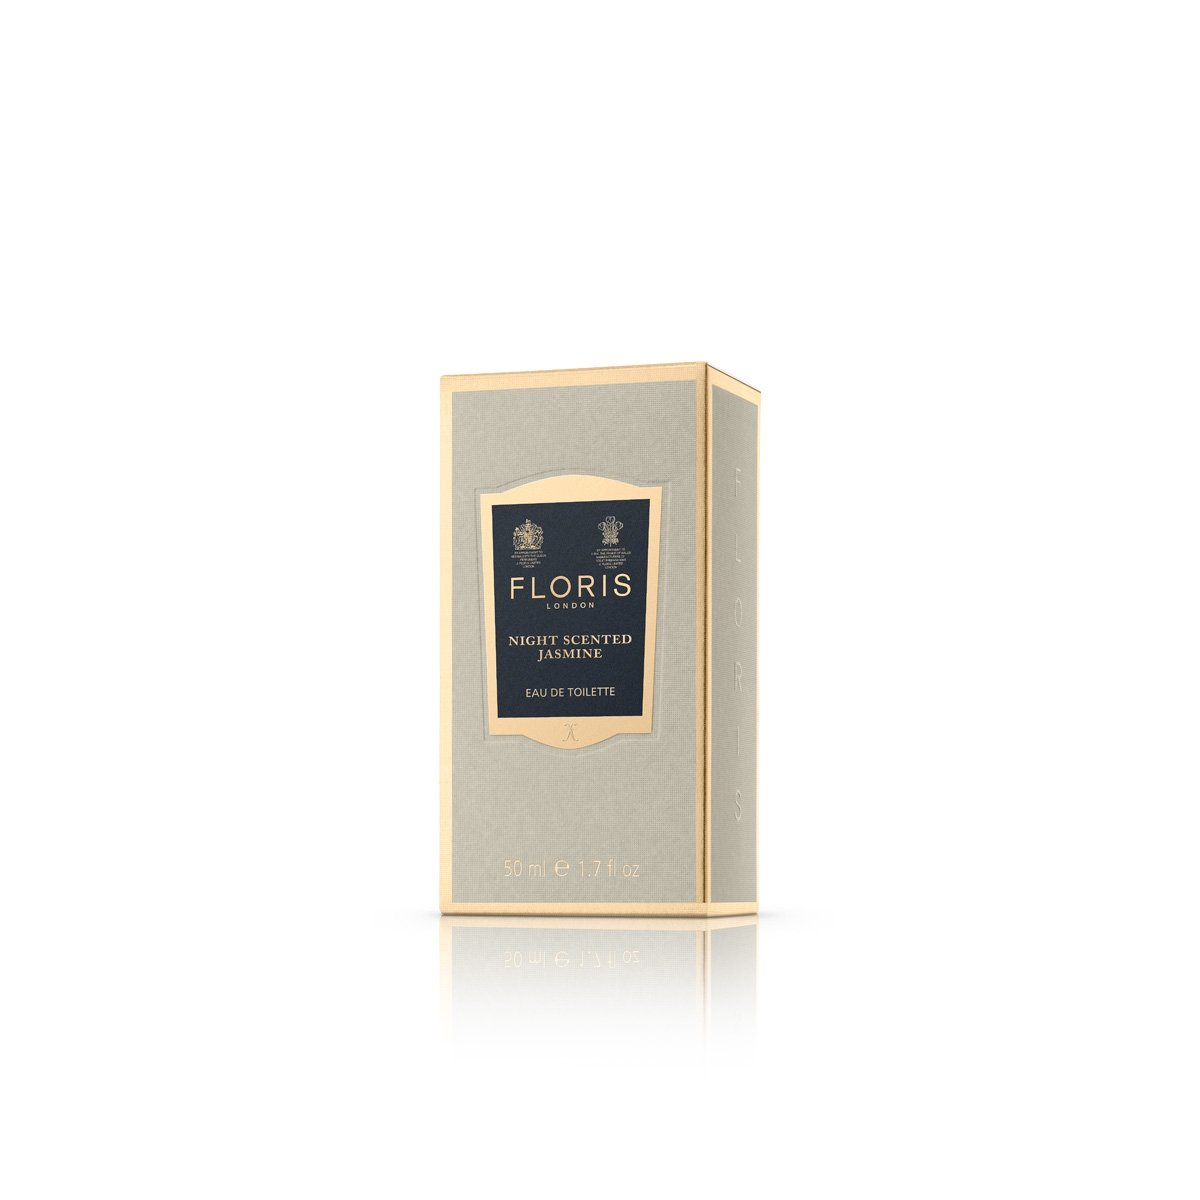 Night Scented Jasmine - Eau de Toilette 50ml